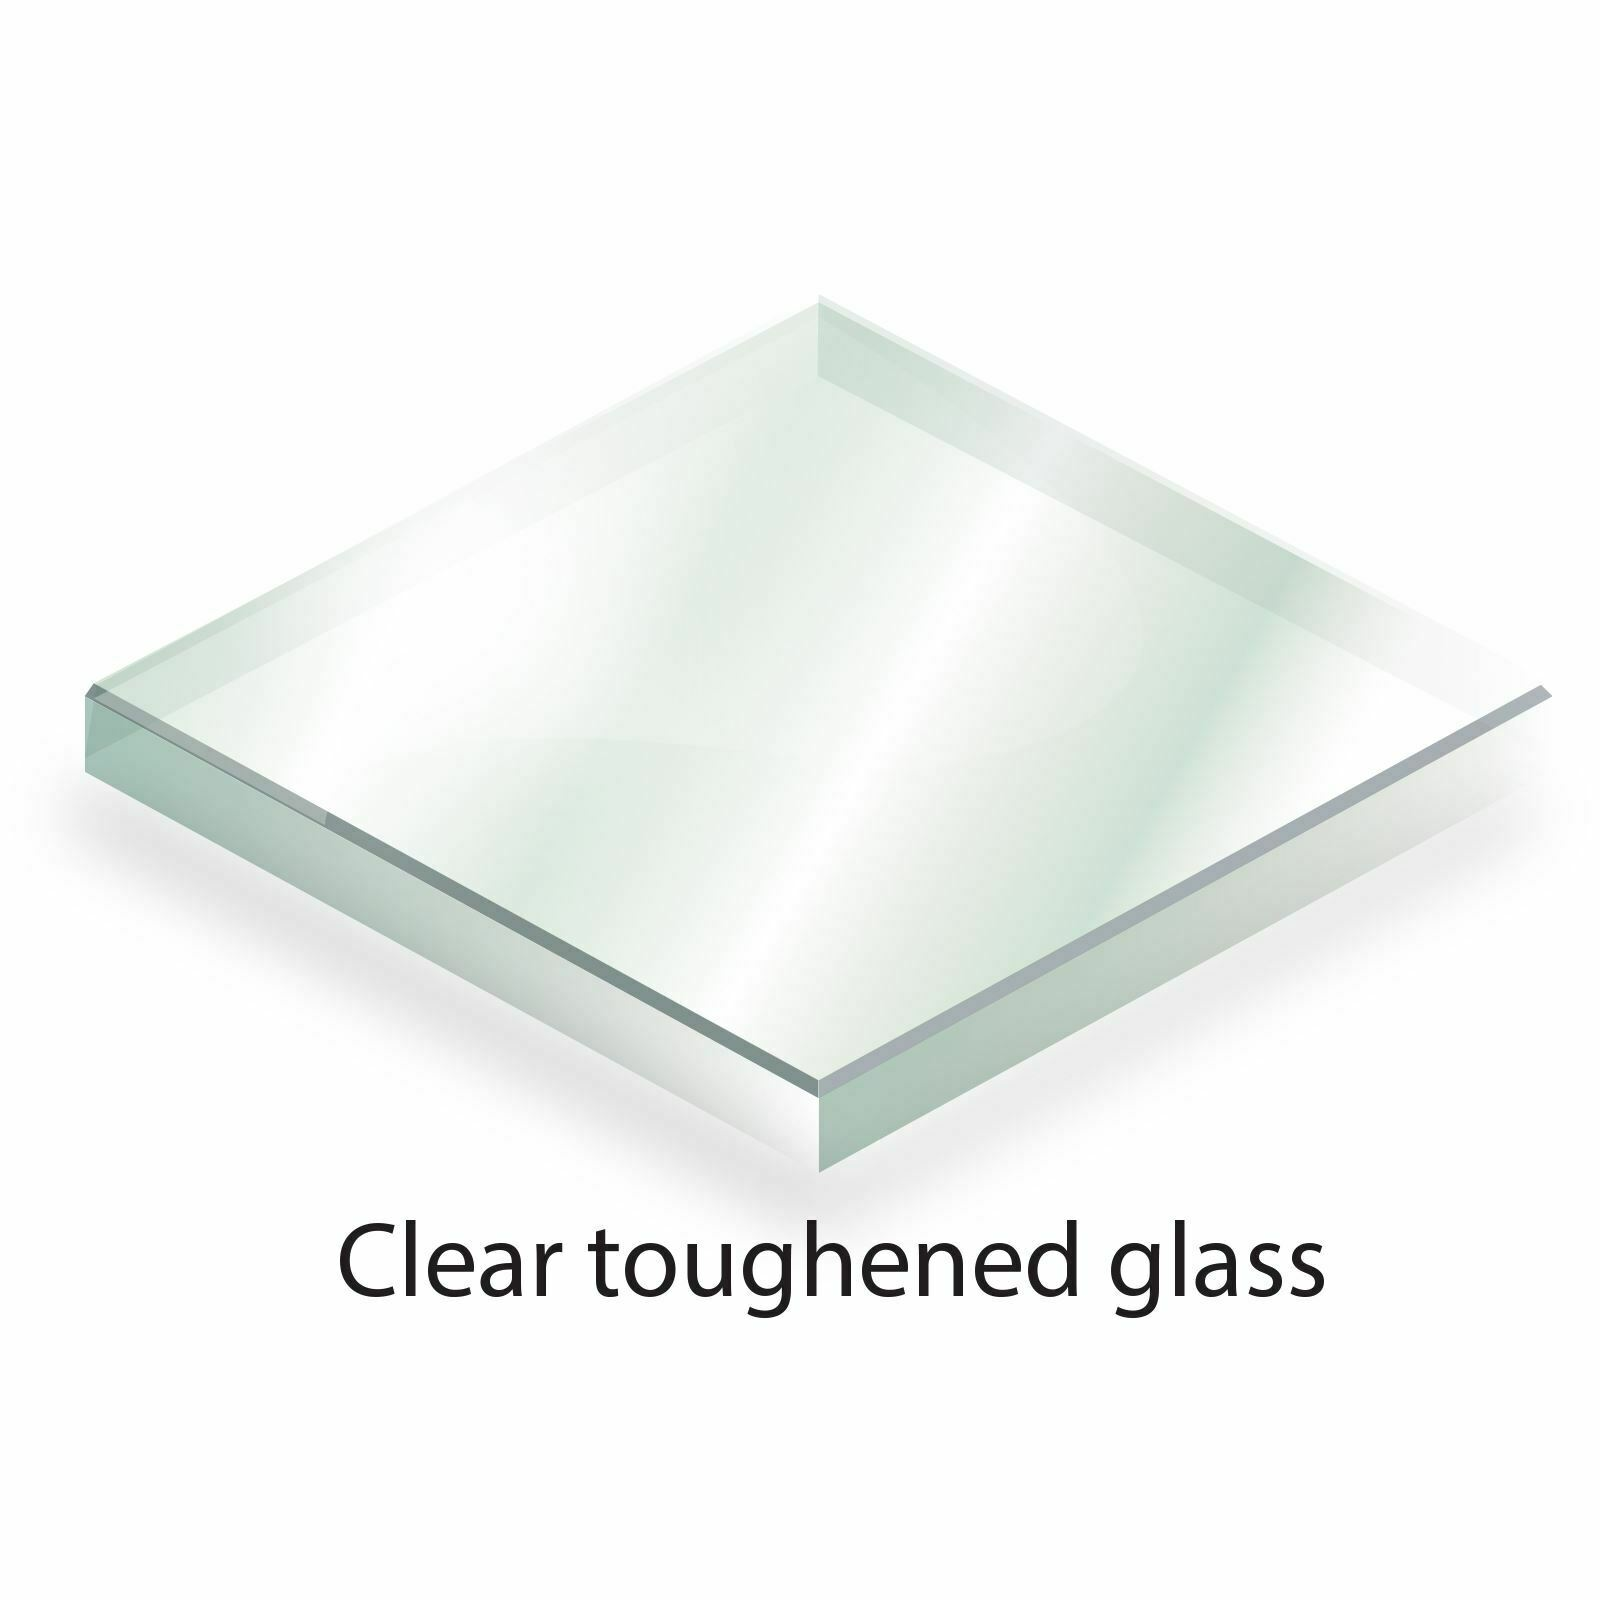 Bespoke Toughened Glass - Cut to Size - 6mm Clear Glass, Polished